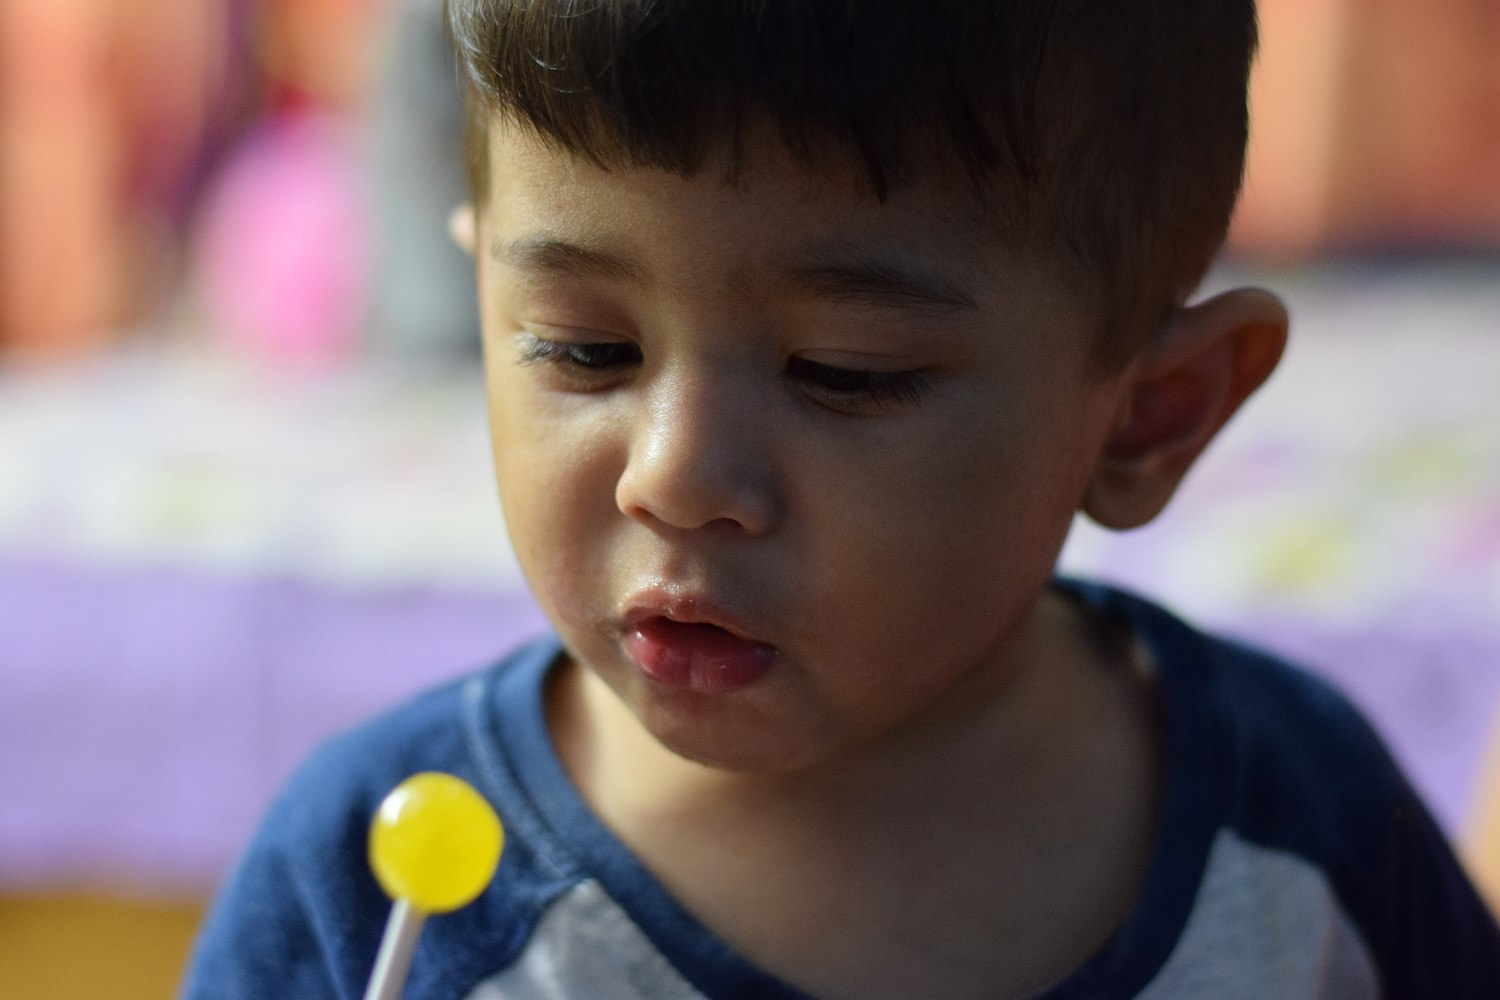 Adopted BME boy with a lollipop